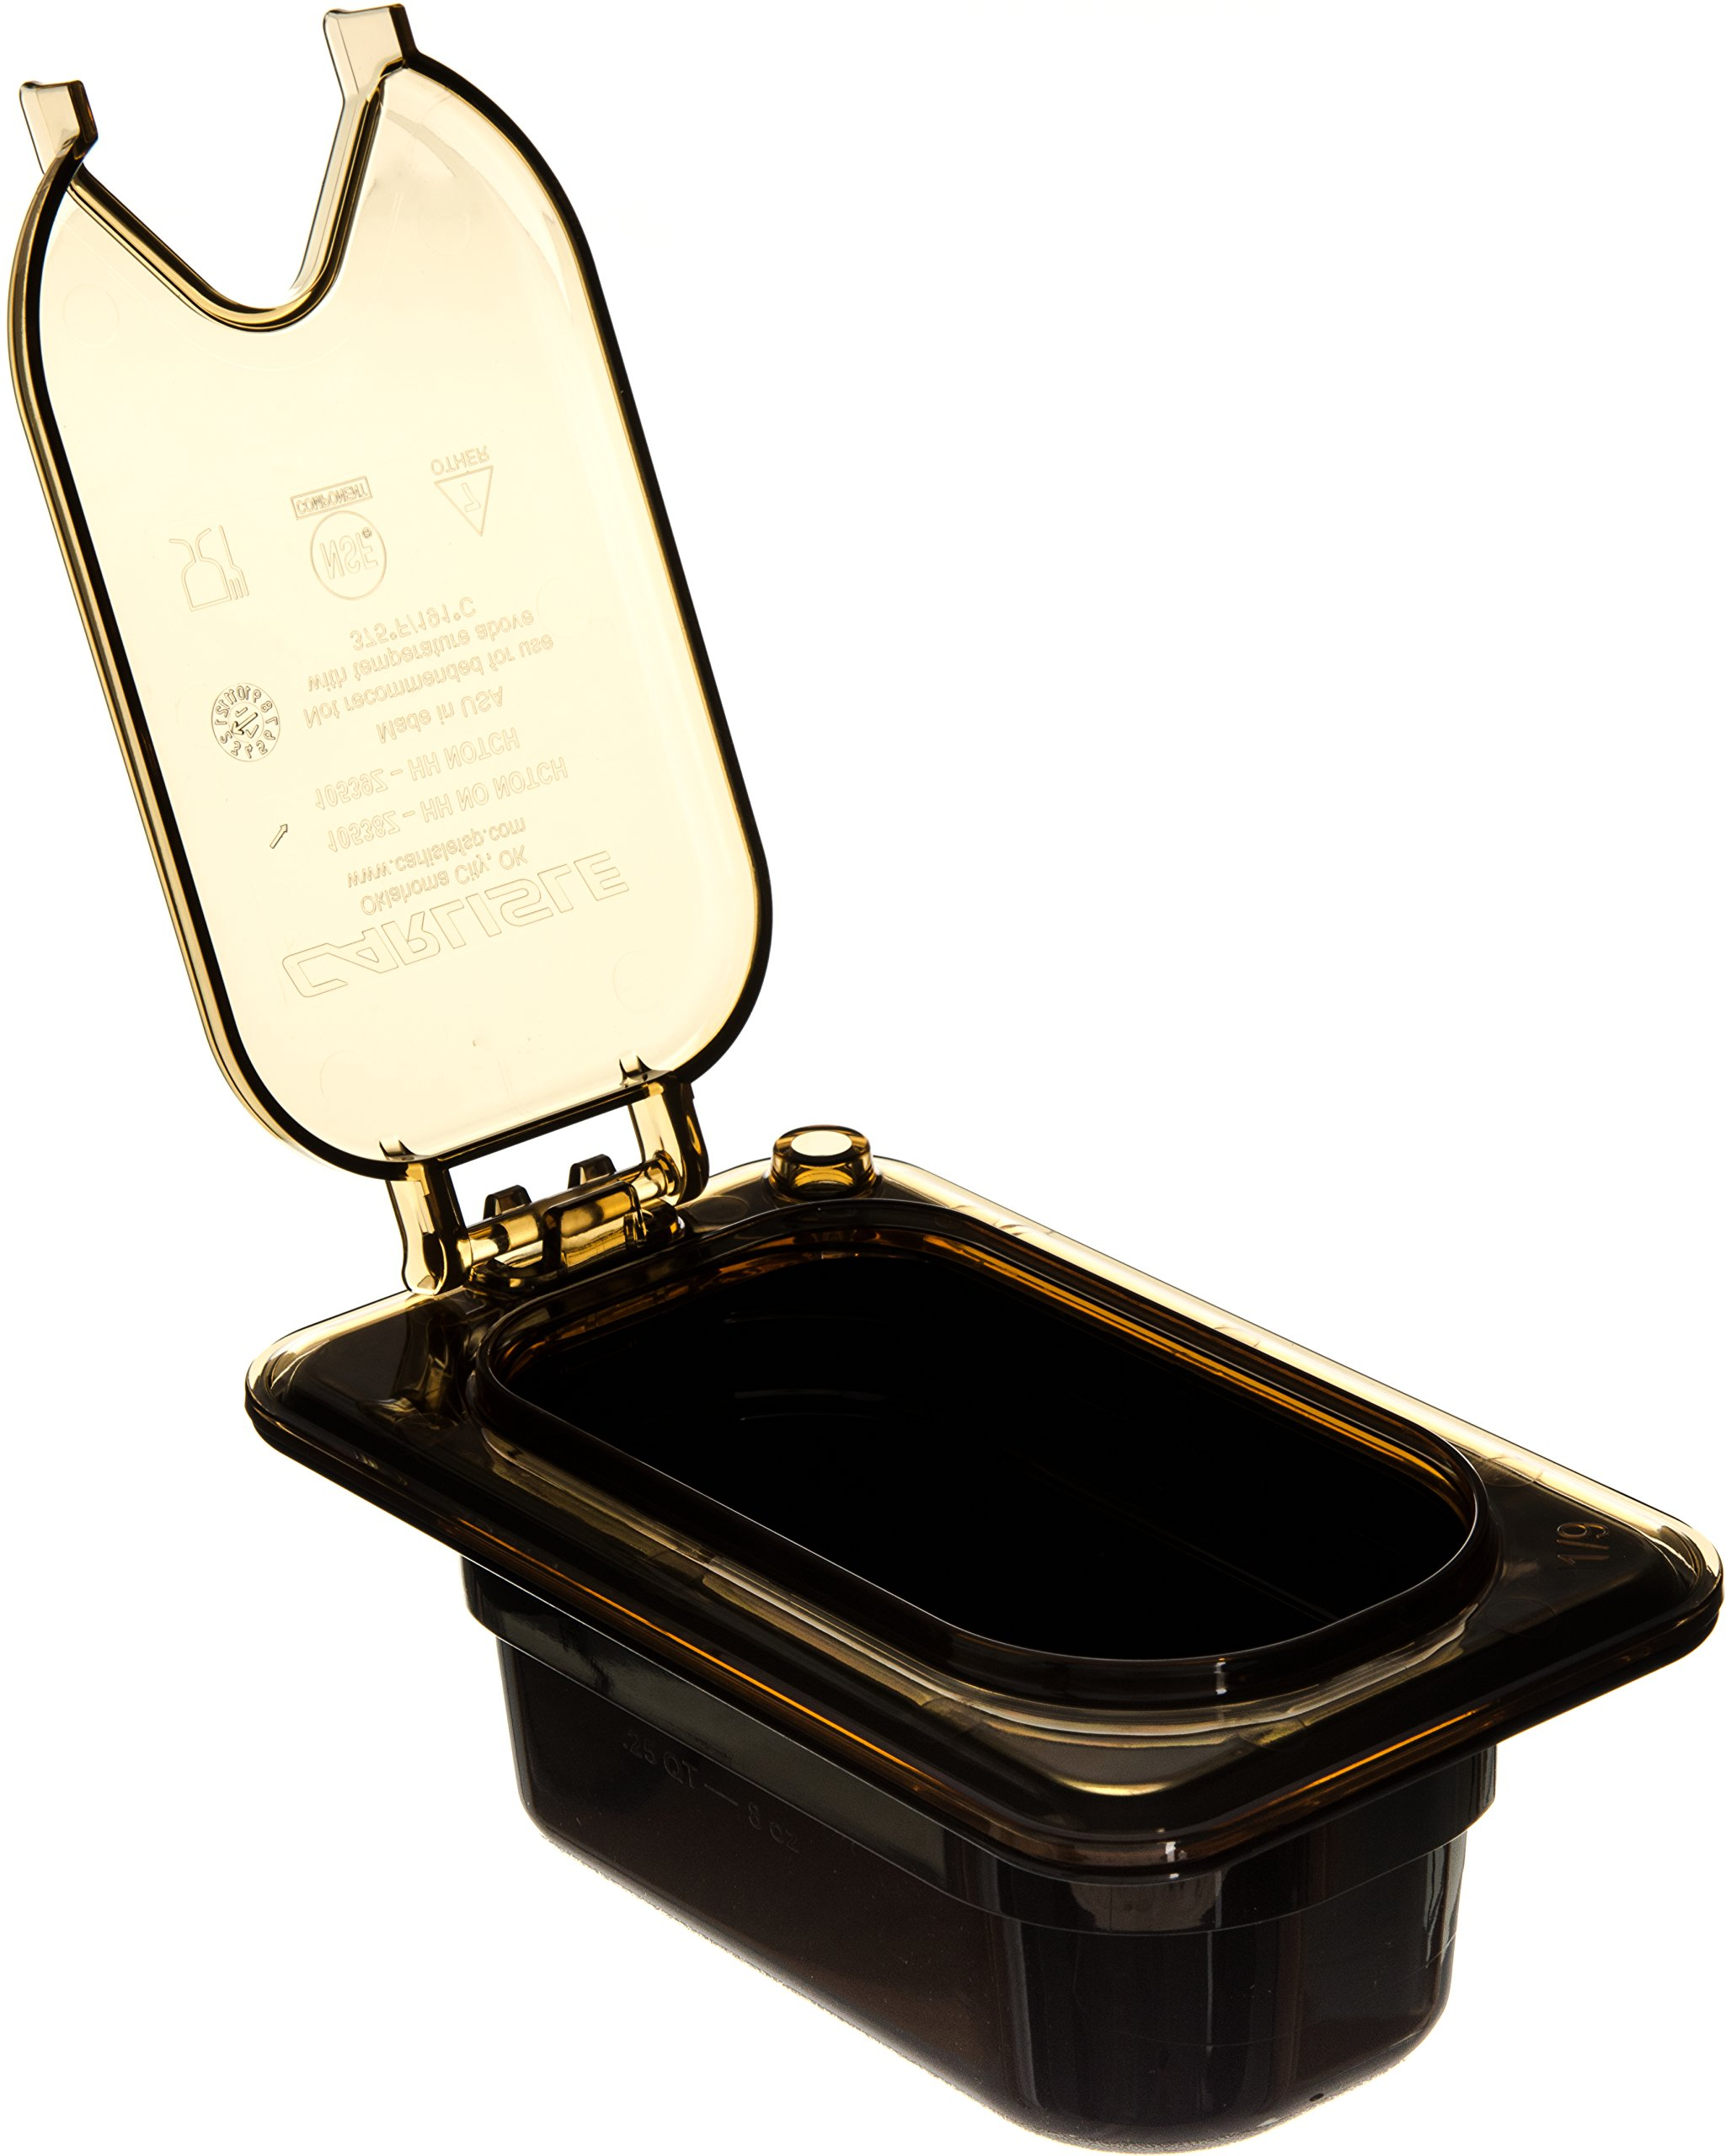 Carlisle 10539Z13 StorPlus EZ Access Hinged High Heat Lid with Handle and Notch, Universal Ninth Size, Amber (Pack of 6) by Carlisle (Image #5)